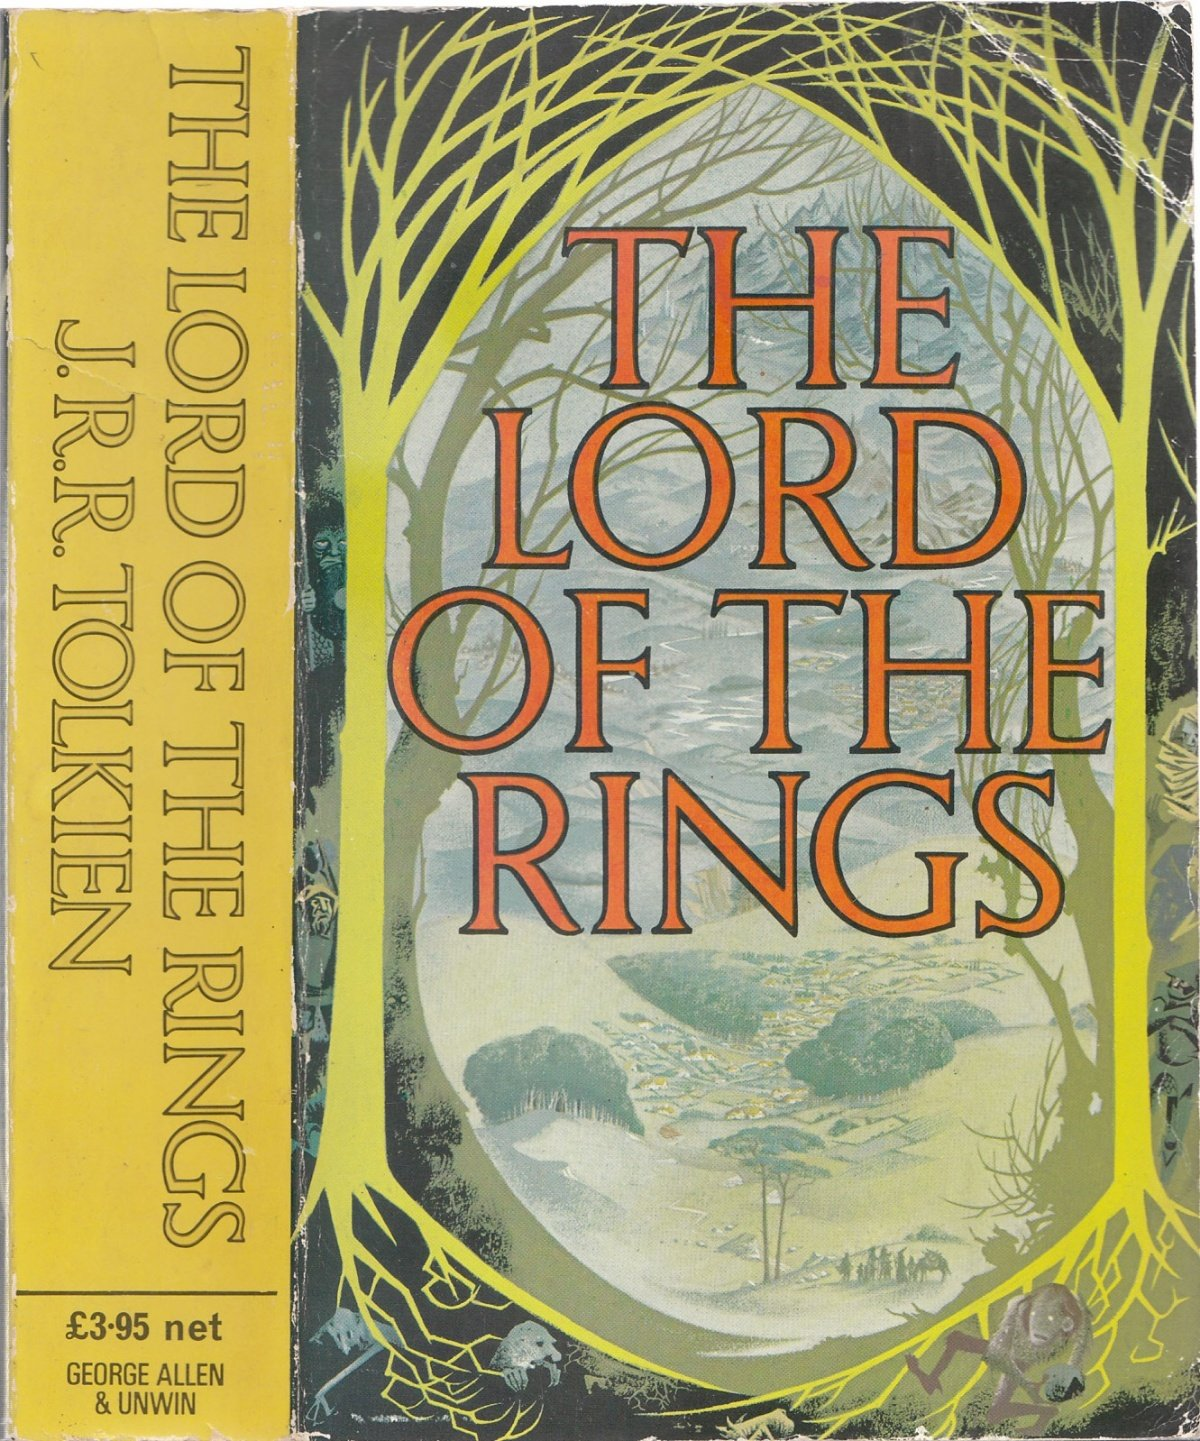 Lord of the Rings: 3v.in 1v: Amazon.es: Tolkien, J. R. R.: Libros ...